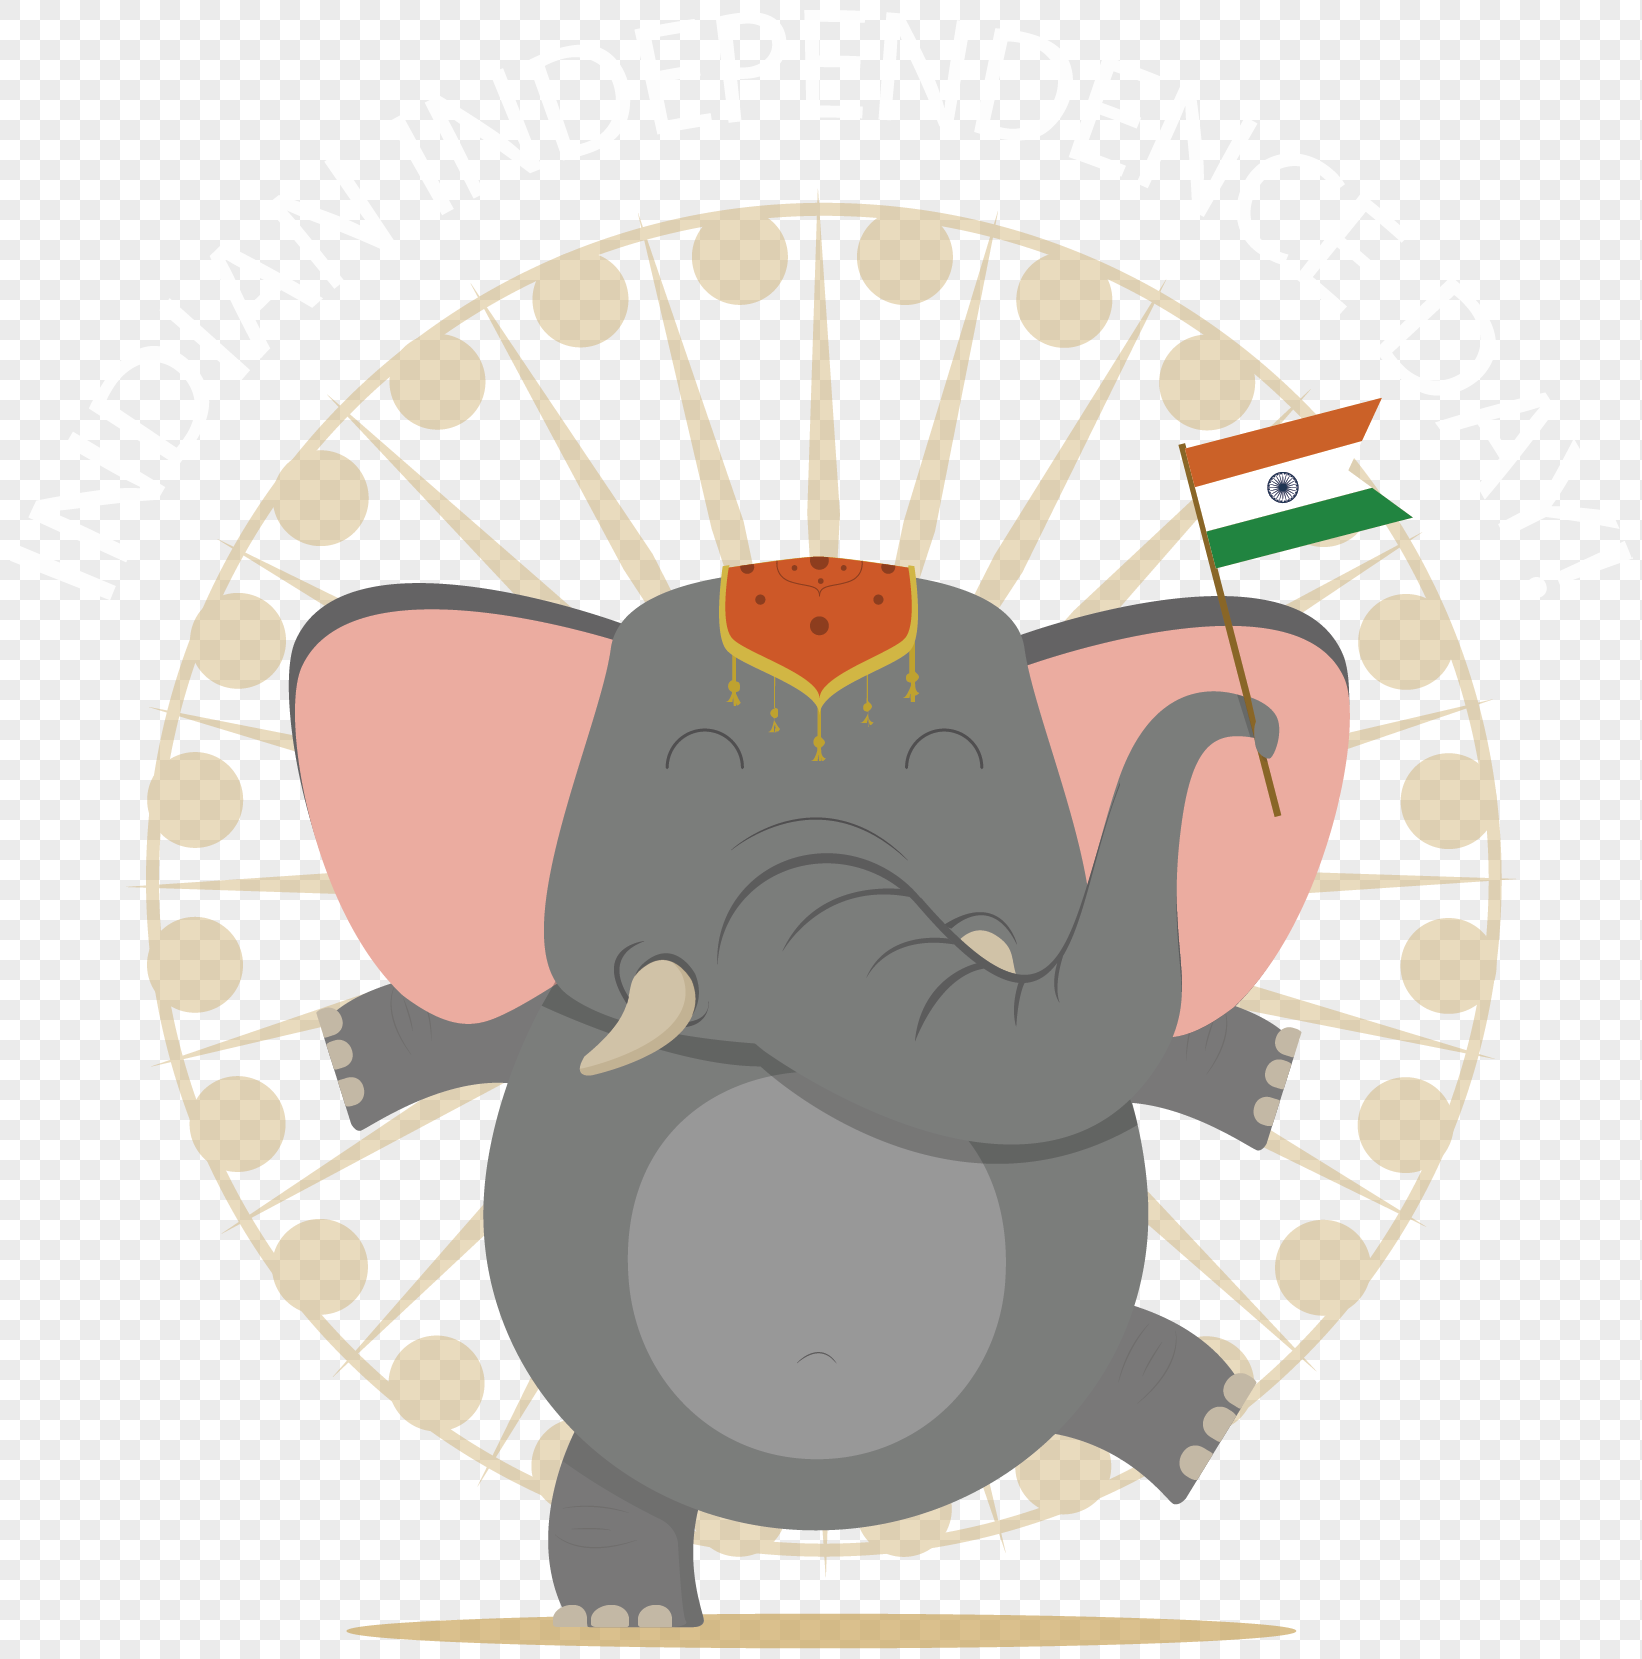 Cartoon india independence day elephant png image_picture free ...